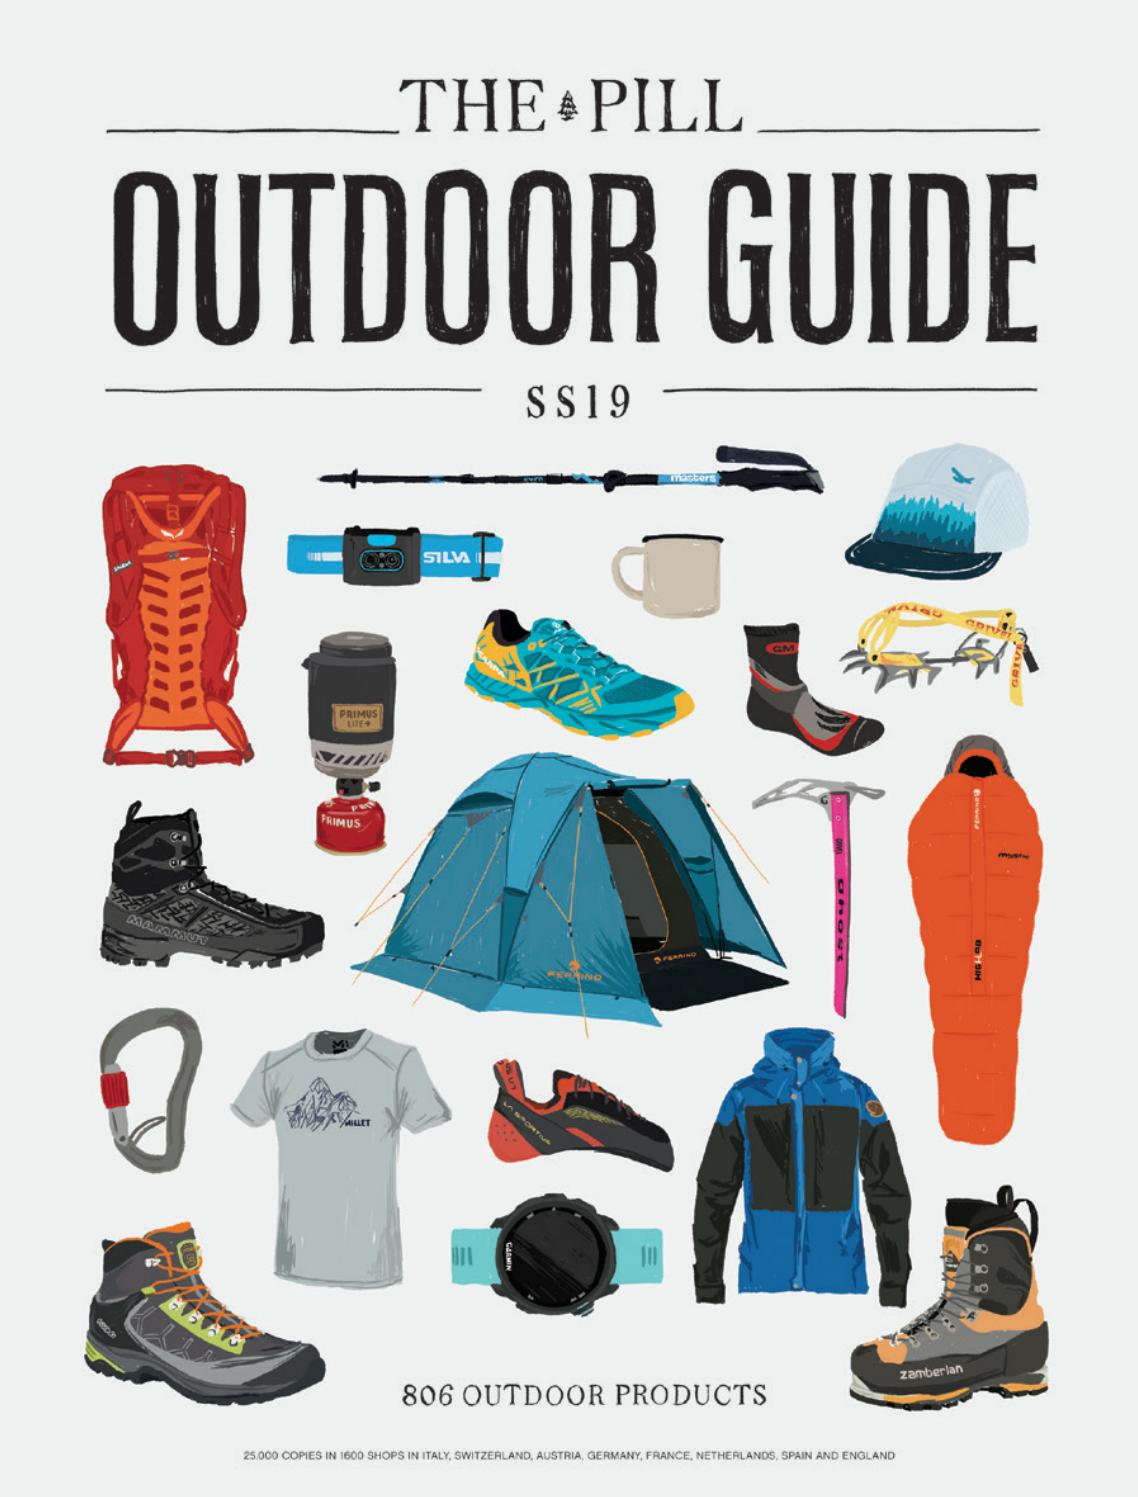 8aca1ea028 The Pill Outdoor Guide SS19 It by Hand Communication - issuu